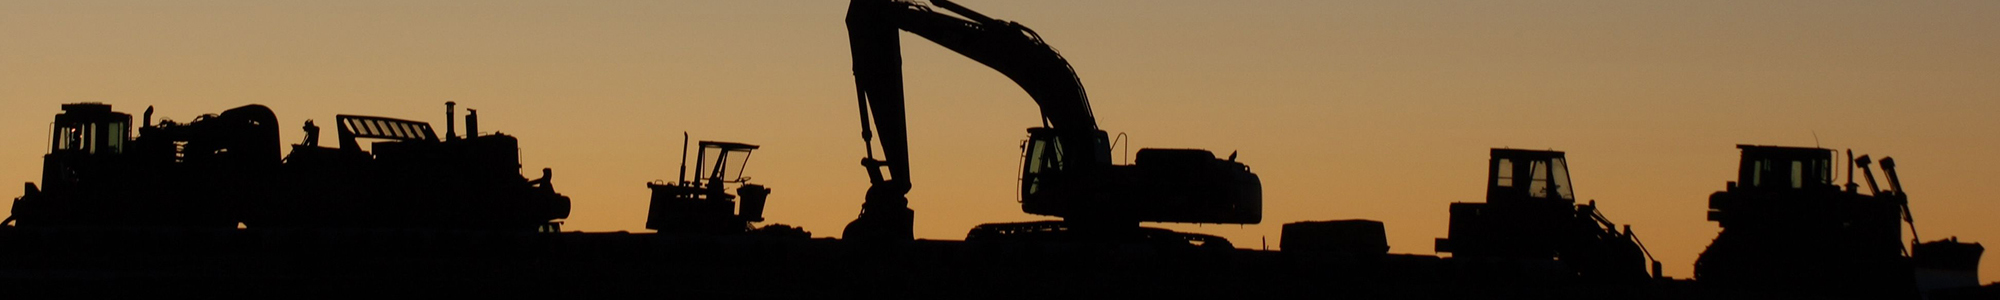 Silhouette of construction plant equipment excavators rollers final trim at sunset